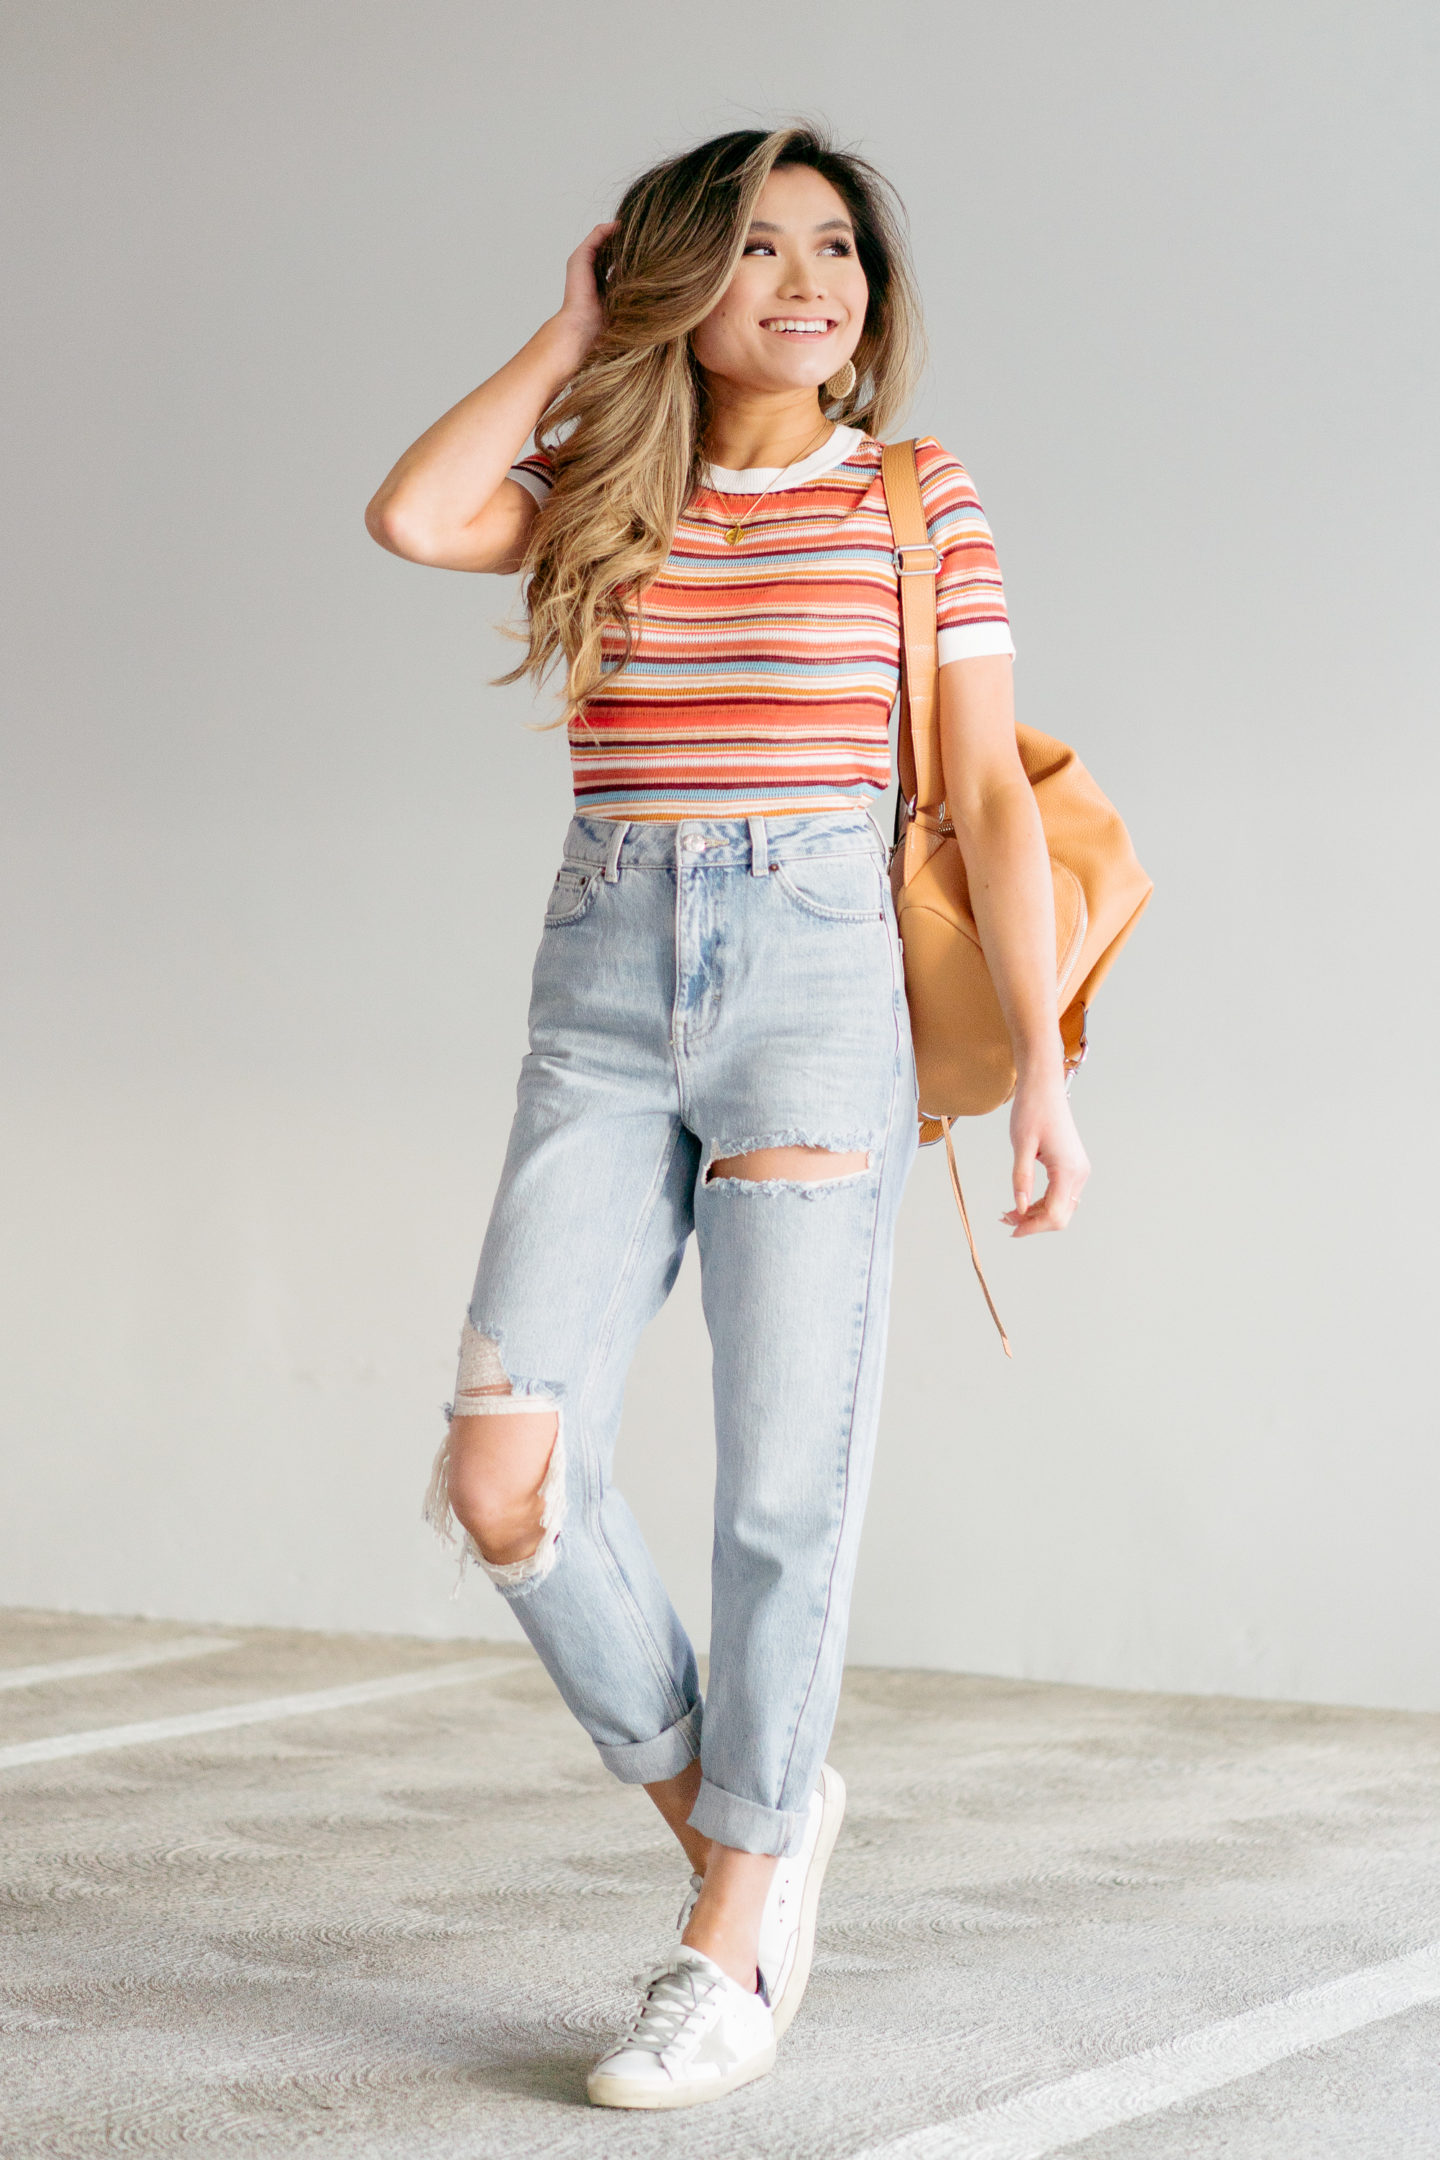 miss louie in nordstrom spring to summer outfit